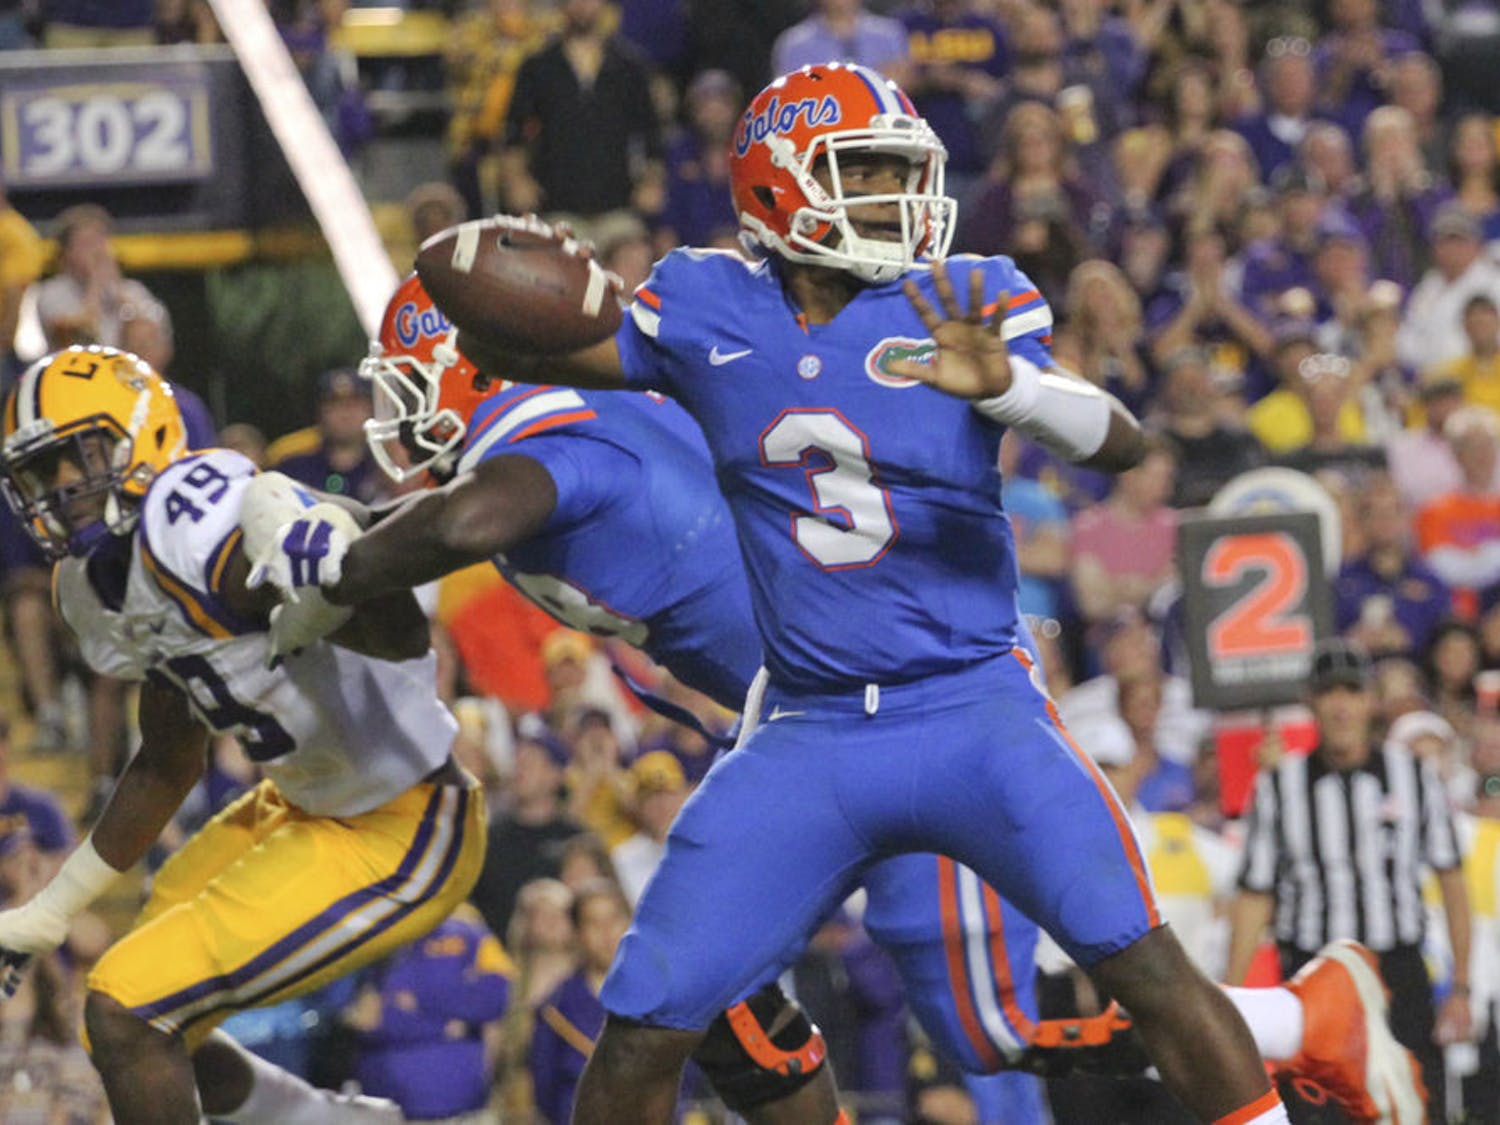 UF quarterback Treon Harris prepares to pass during Florida's 35-28 loss to LSU on Oct. 17, 2015, at Tiger Stadium in Baton Rouge, Louisiana.